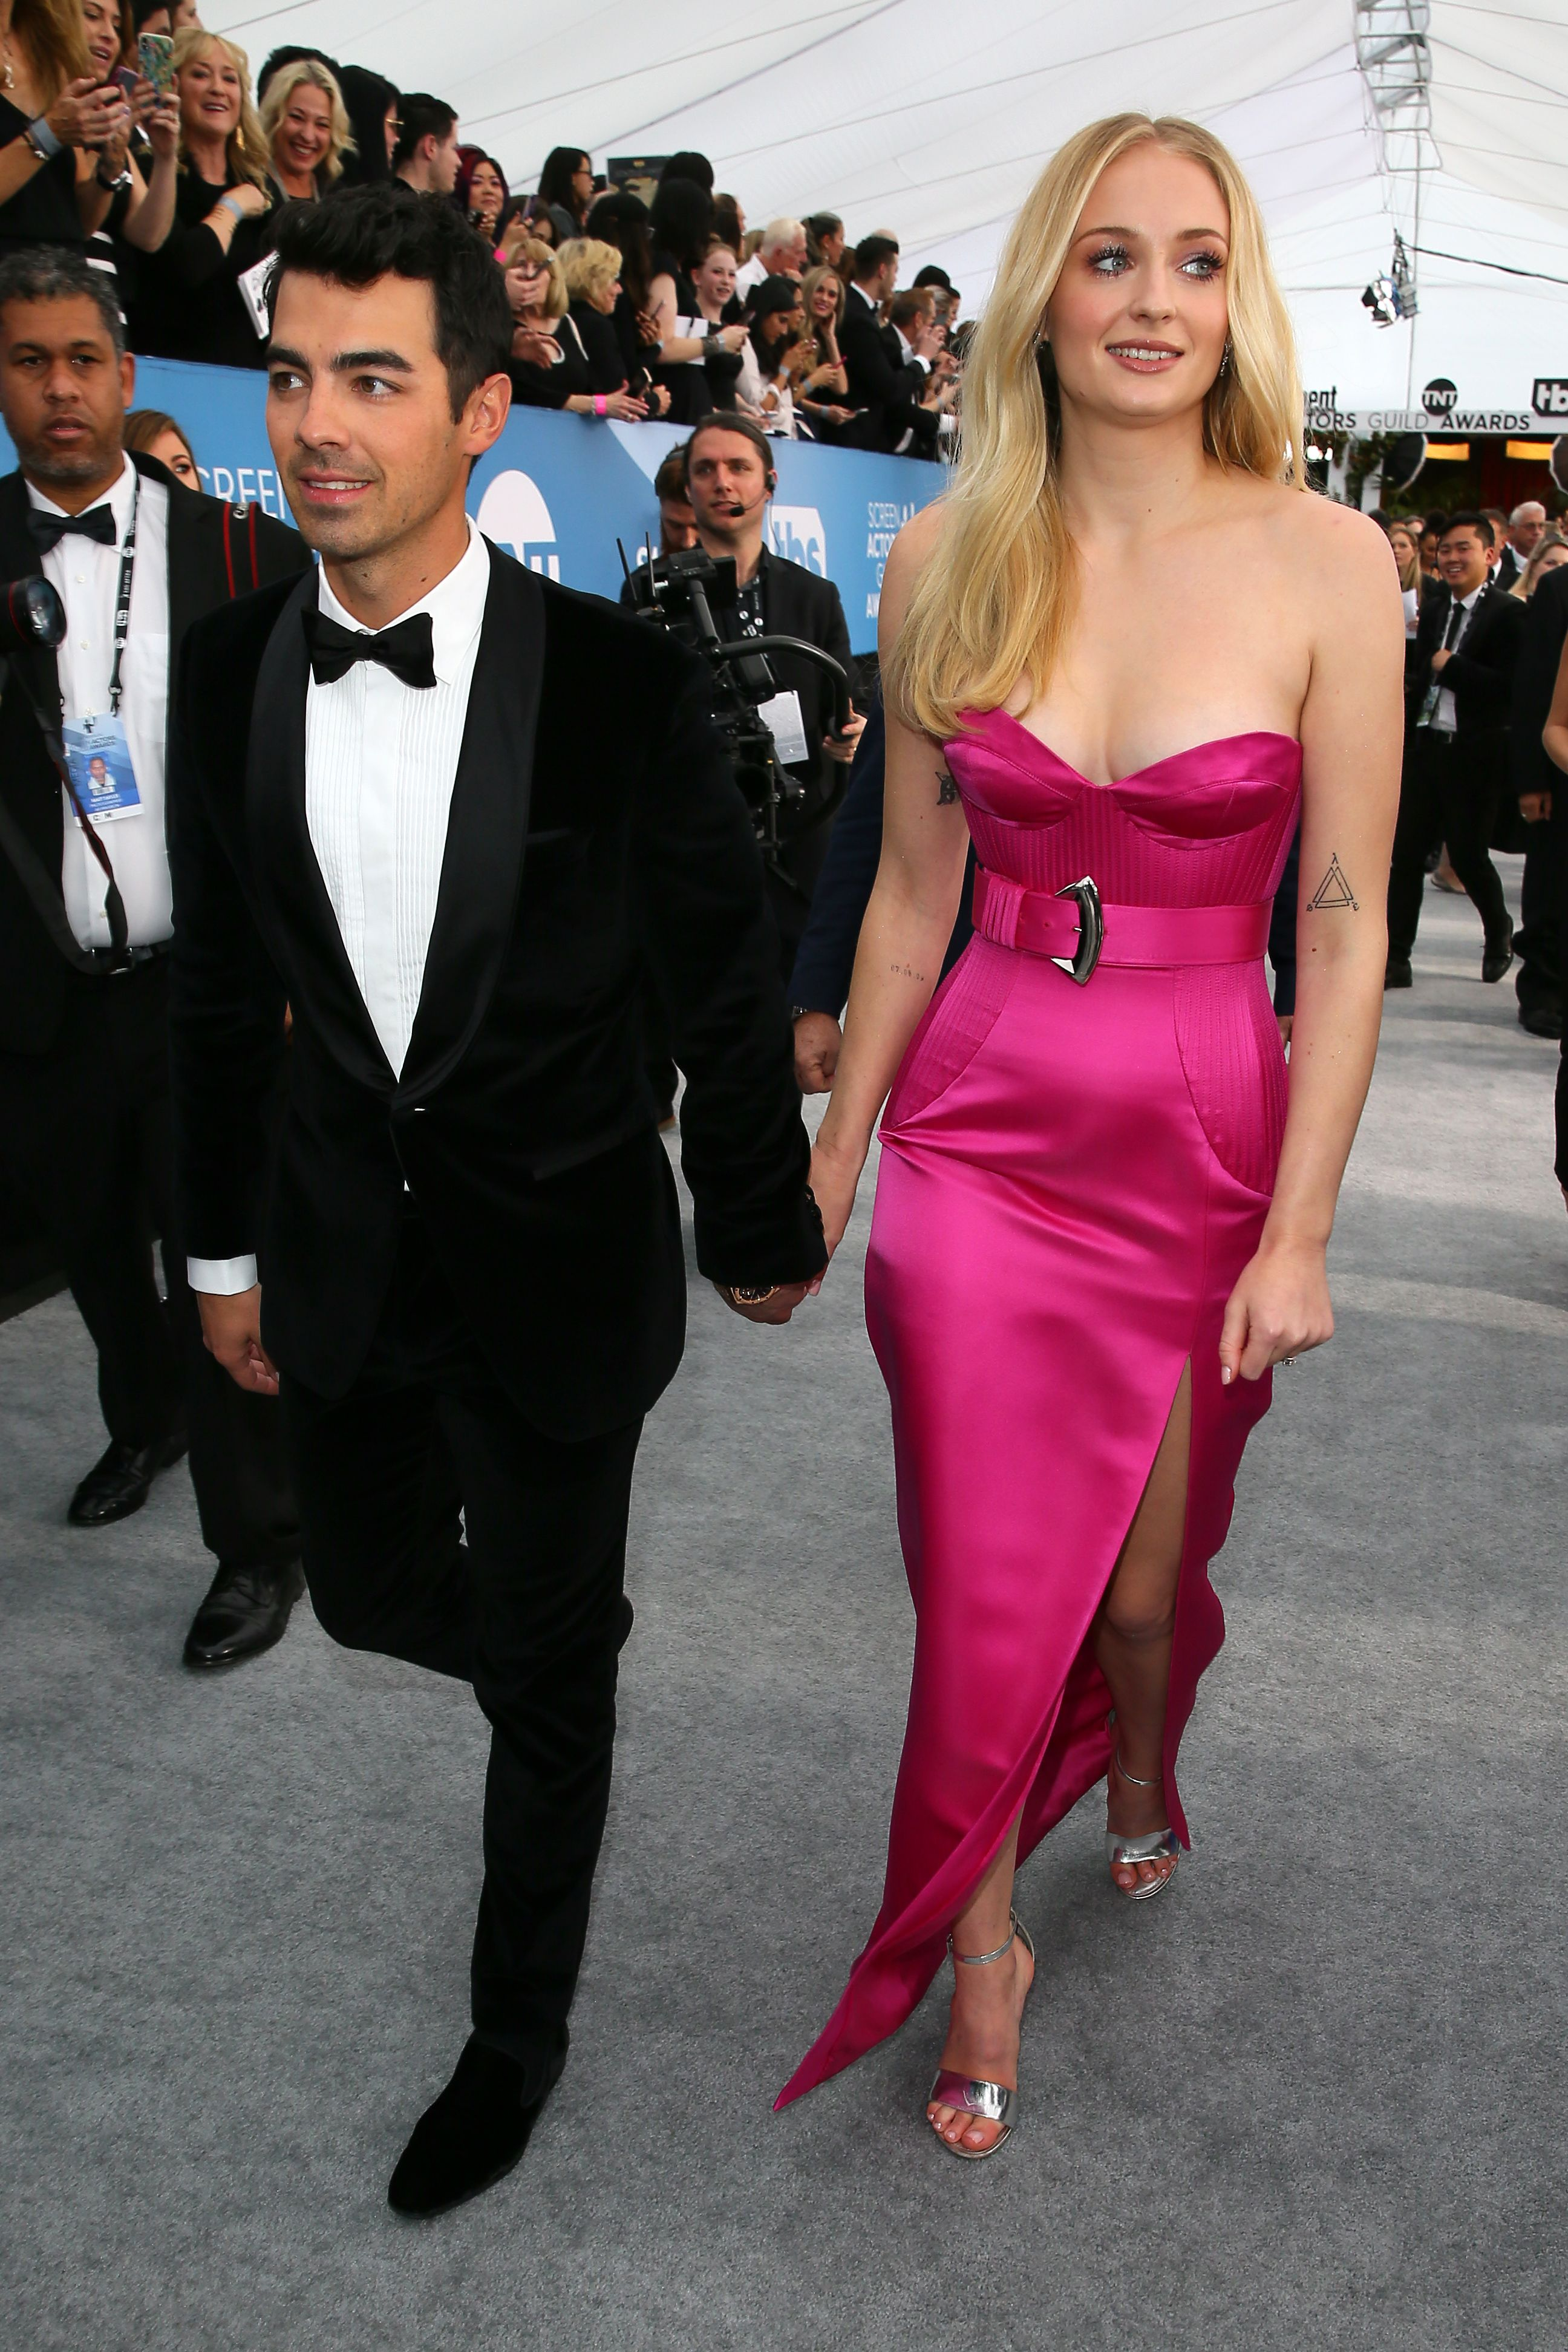 English actress Sophie Turner (R) and US musician Joe Jonas arrive for the 26th Annual Screen Actors Guild Awards at the Shrine Auditorium in Los Angeles on January 19, 2020. (Photo by Jean-Baptiste Lacroix / AFP) (Photo by JEAN-BAPTISTE LACROIX/AFP via Getty Images)